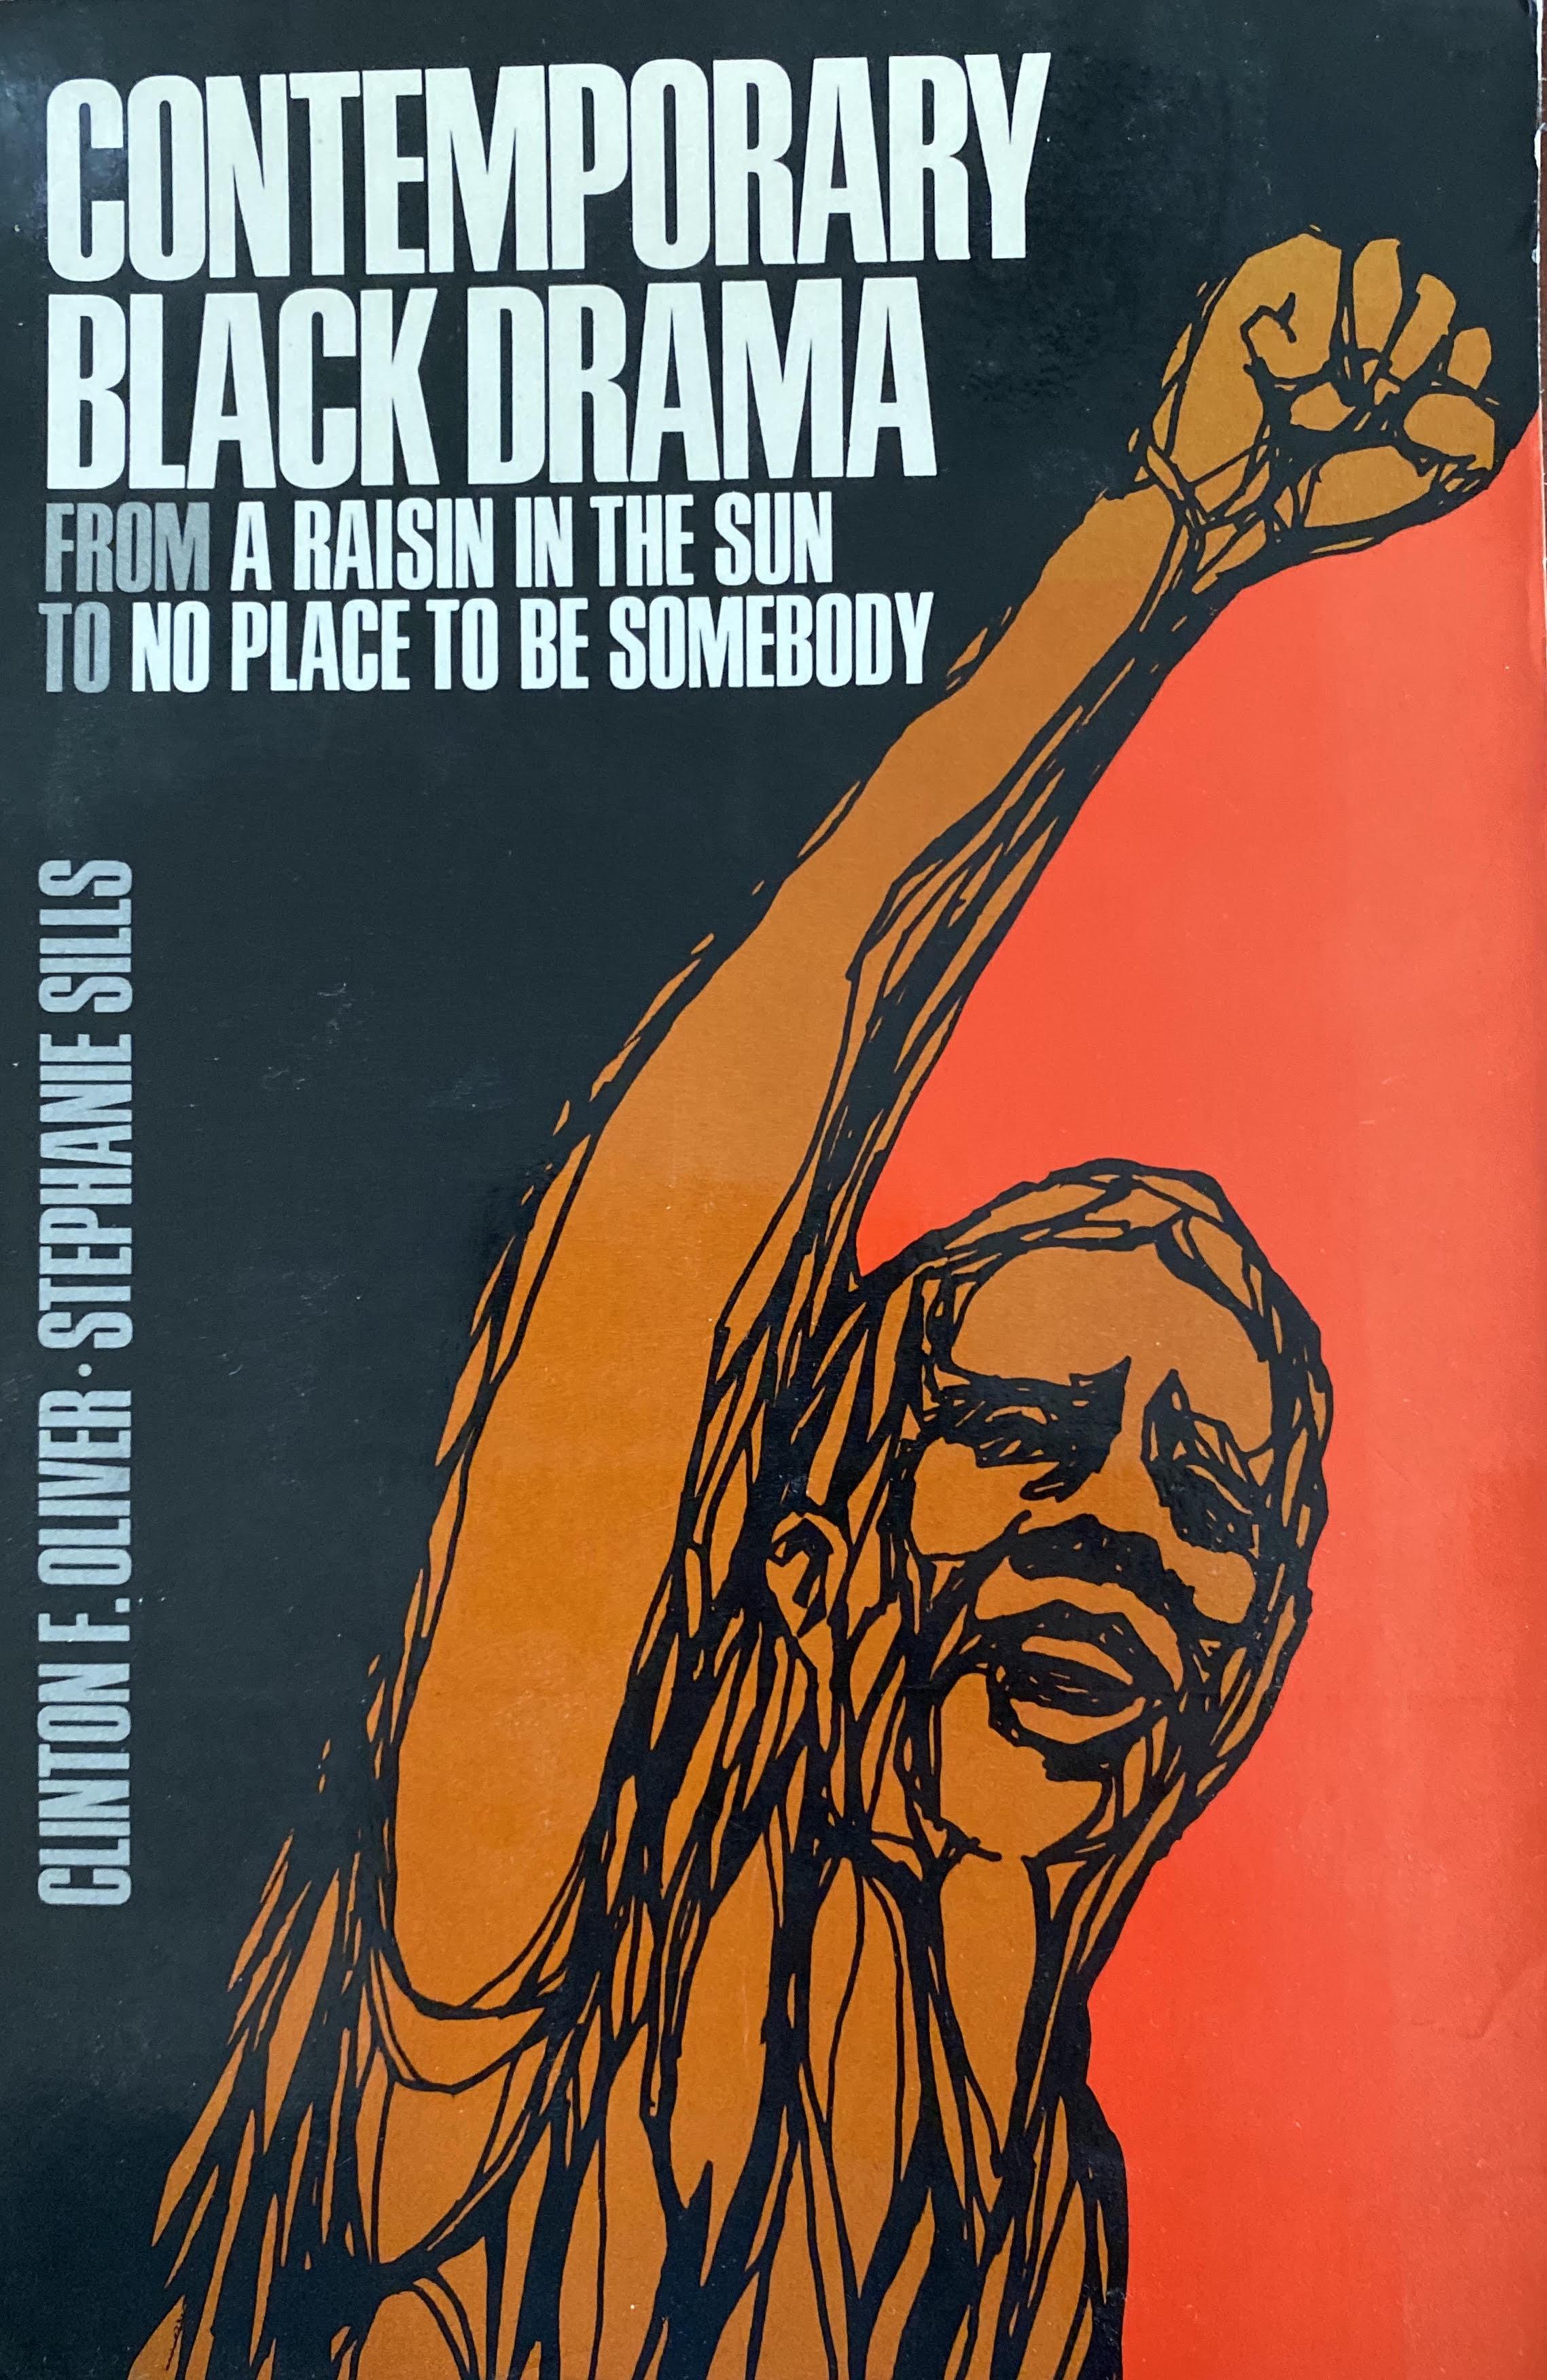 Contemporary Black Drama: From A Raisin in the Sun to No Place to Be Somebody